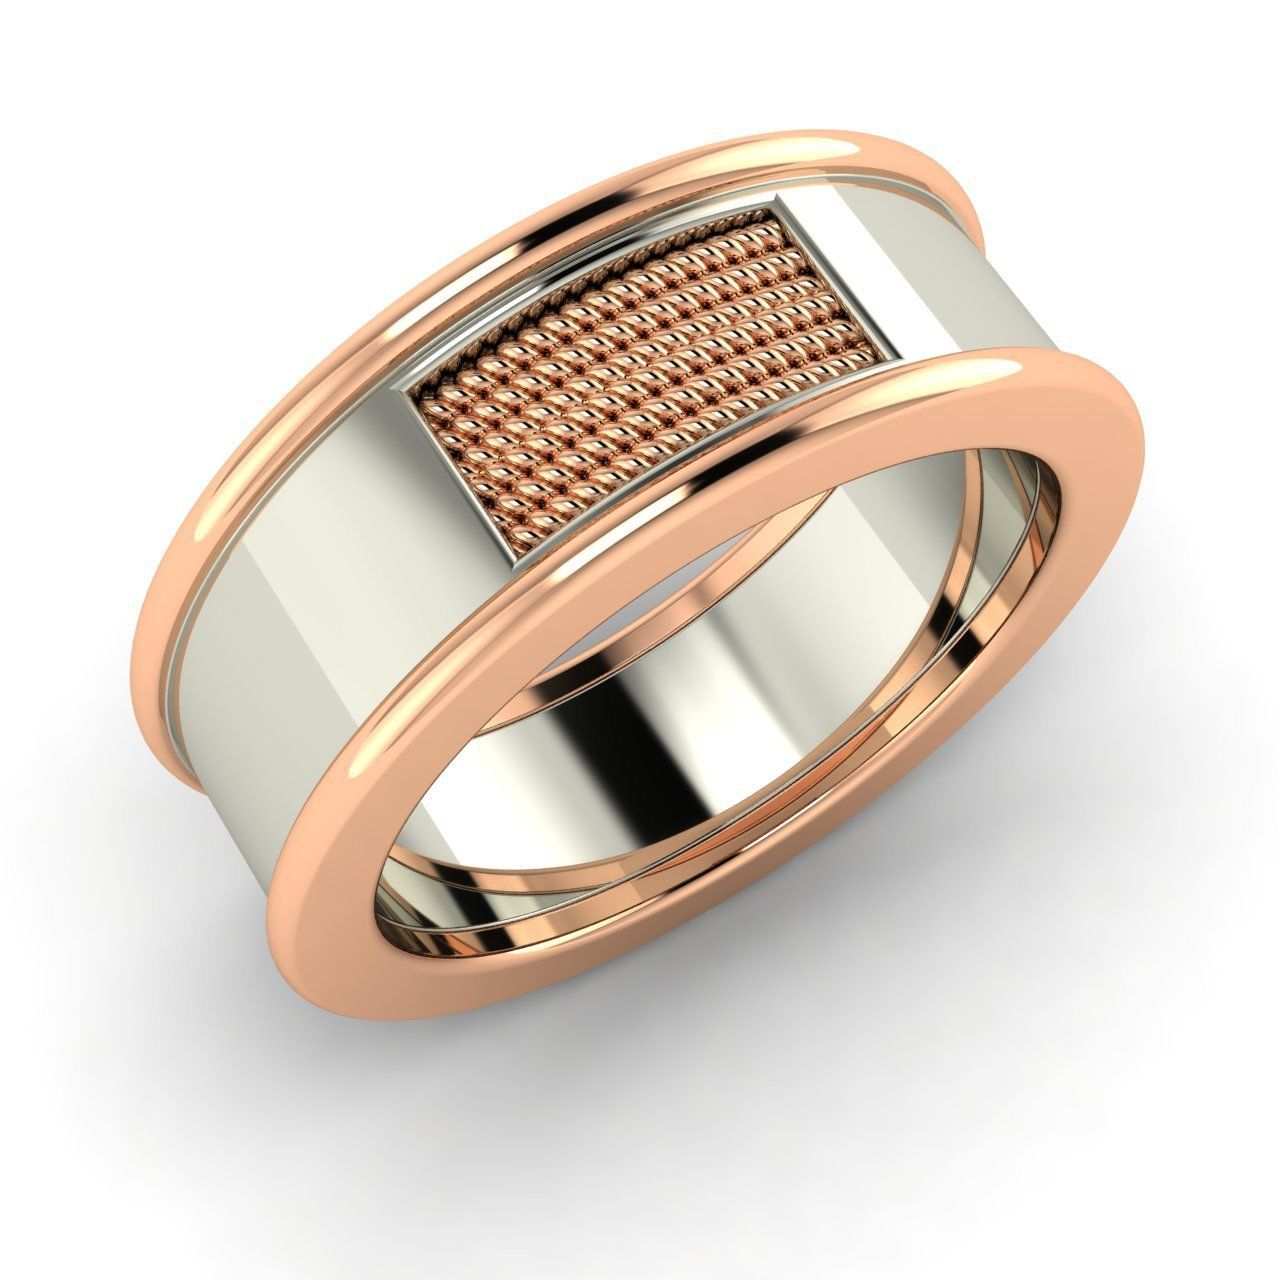 47+ Two tone wedding rings for him ideas in 2021